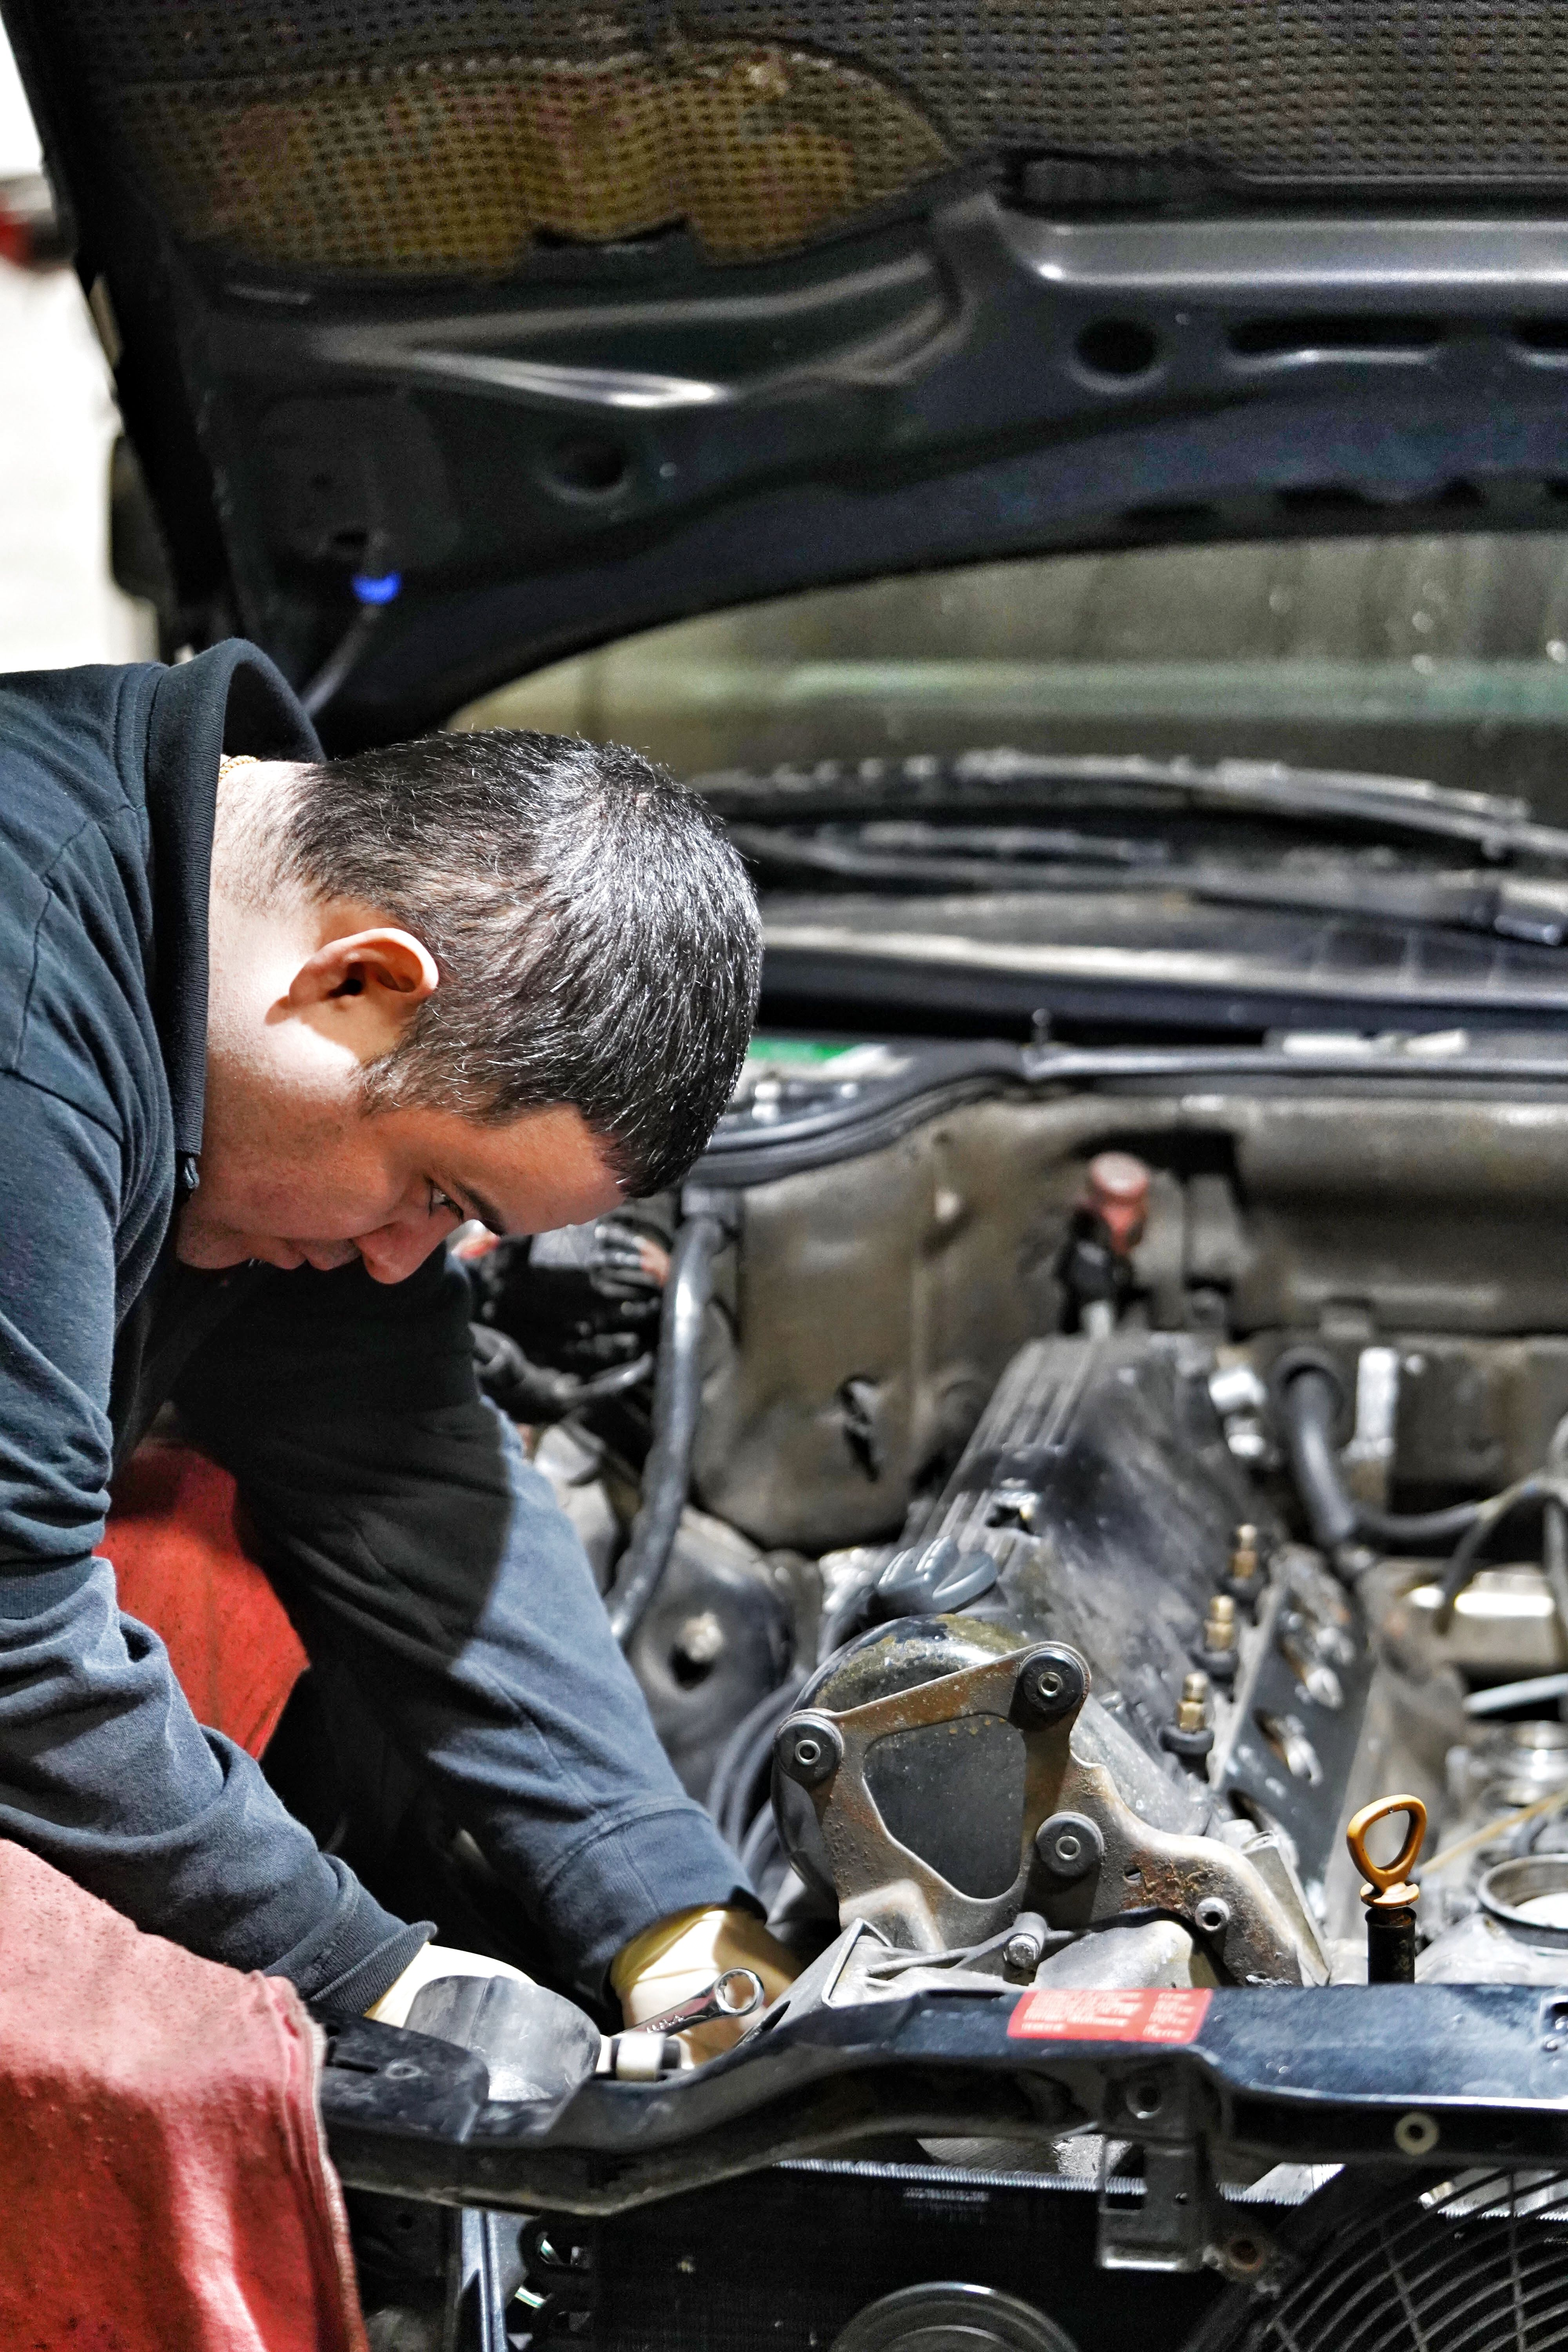 When your car is being repaired it seems like you're on